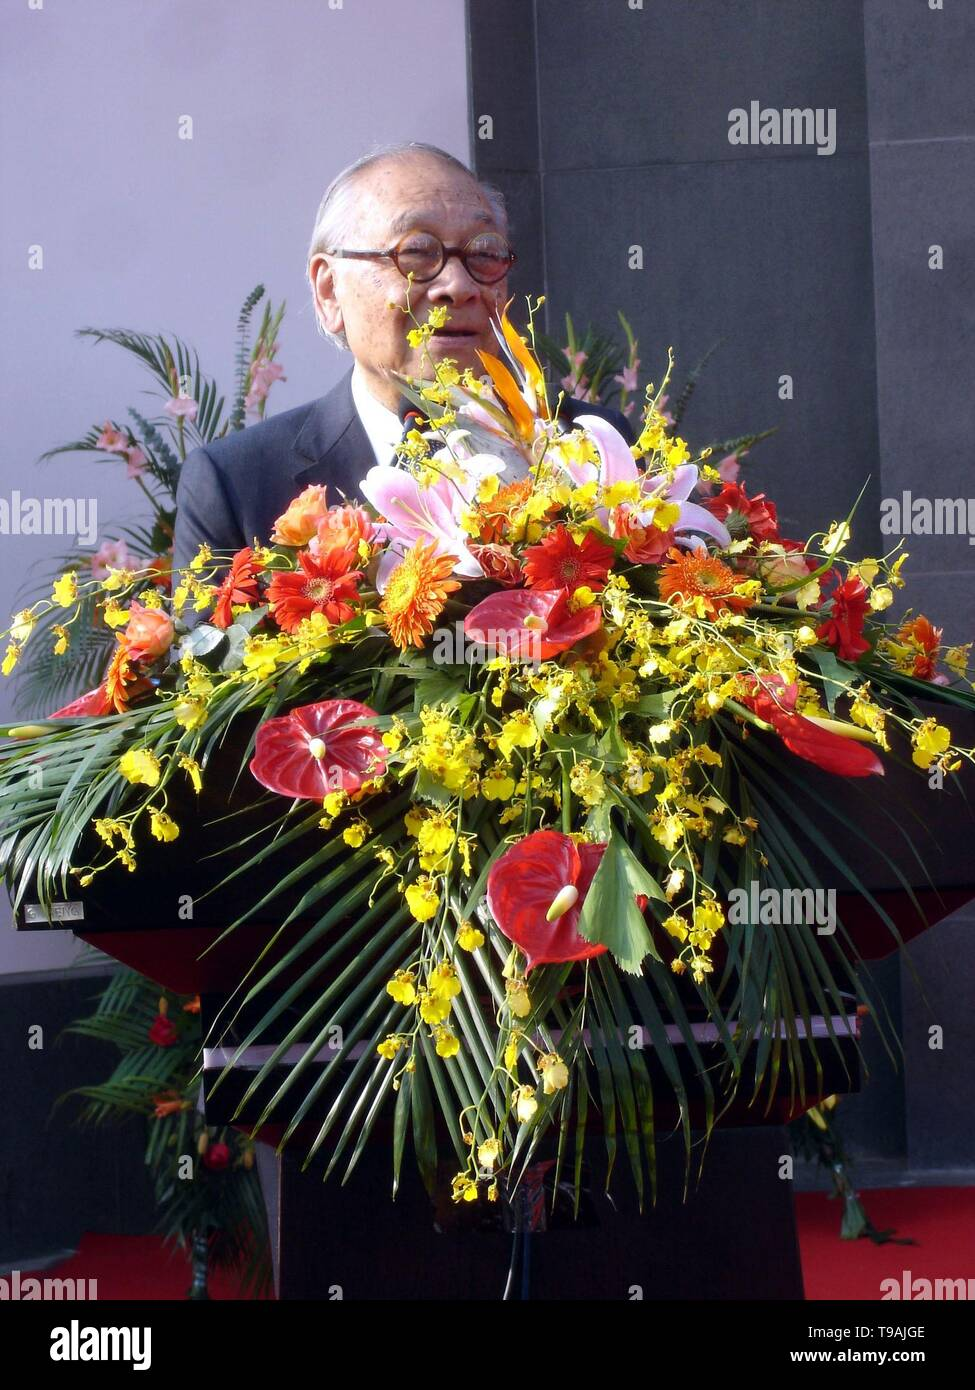 Beijing, China. 17th May, 2019. File photo taken on Oct. 6, 2006 shows world-renowned architect Ieoh Ming Pei delivering a speech at the opening ceremony of the new Suzhou Museum, designed by Pei, in Suzhou, east China's Jiangsu Province. Ieoh Ming Pei, commonly known as I.M. Pei, died Thursday at age 102. Pei was born in Guangzhou of China and moved to the United States in 1935. He won a wide variety of prizes and awards in the field of architecture. Credit: Xinhua/Alamy Live News - Stock Image